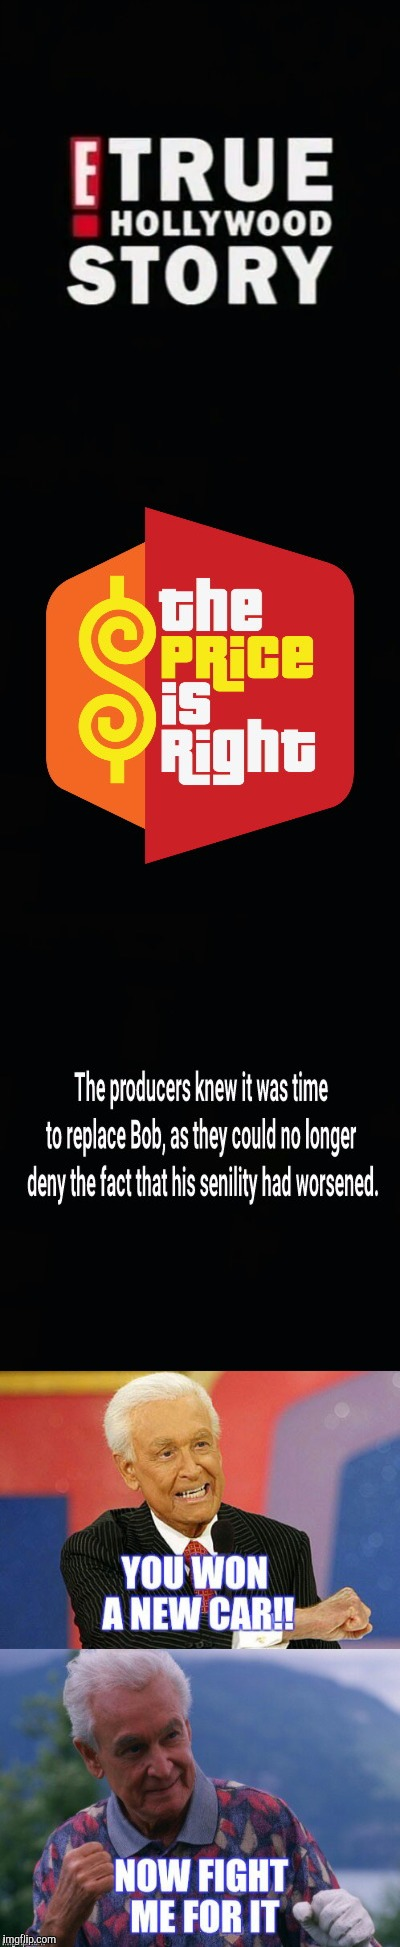 BOB........AND WEAVE | . | image tagged in the price is right,bob barker,true story,crazy | made w/ Imgflip meme maker